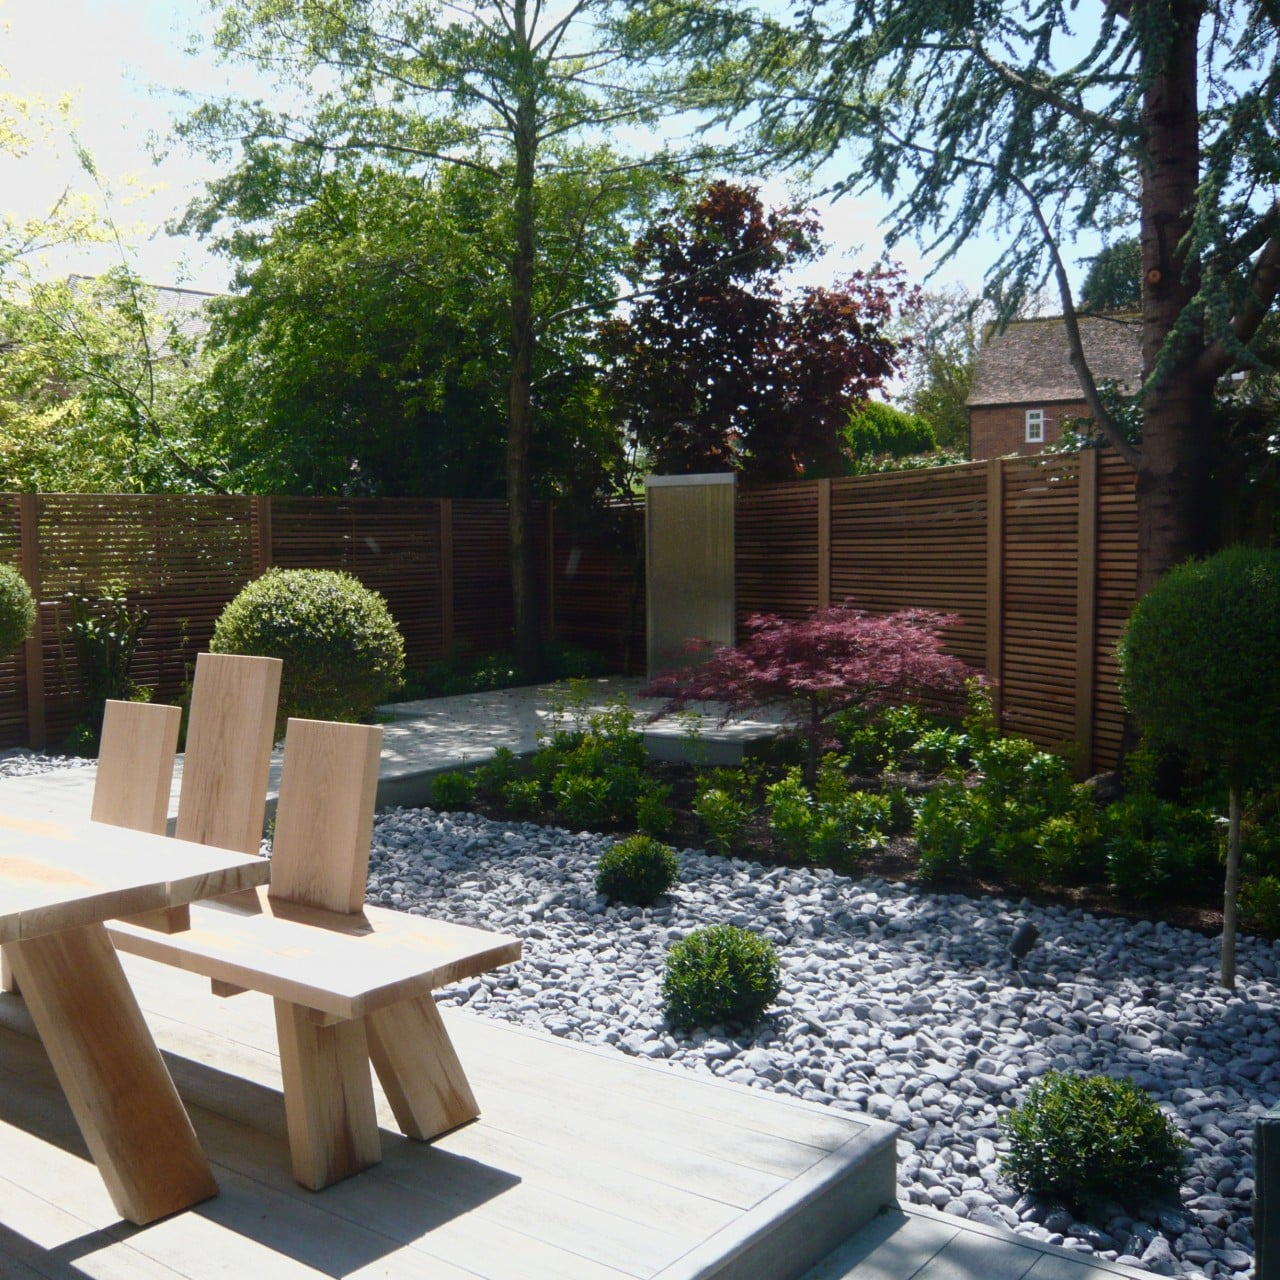 This is a lovely after shot of the contemporary garden